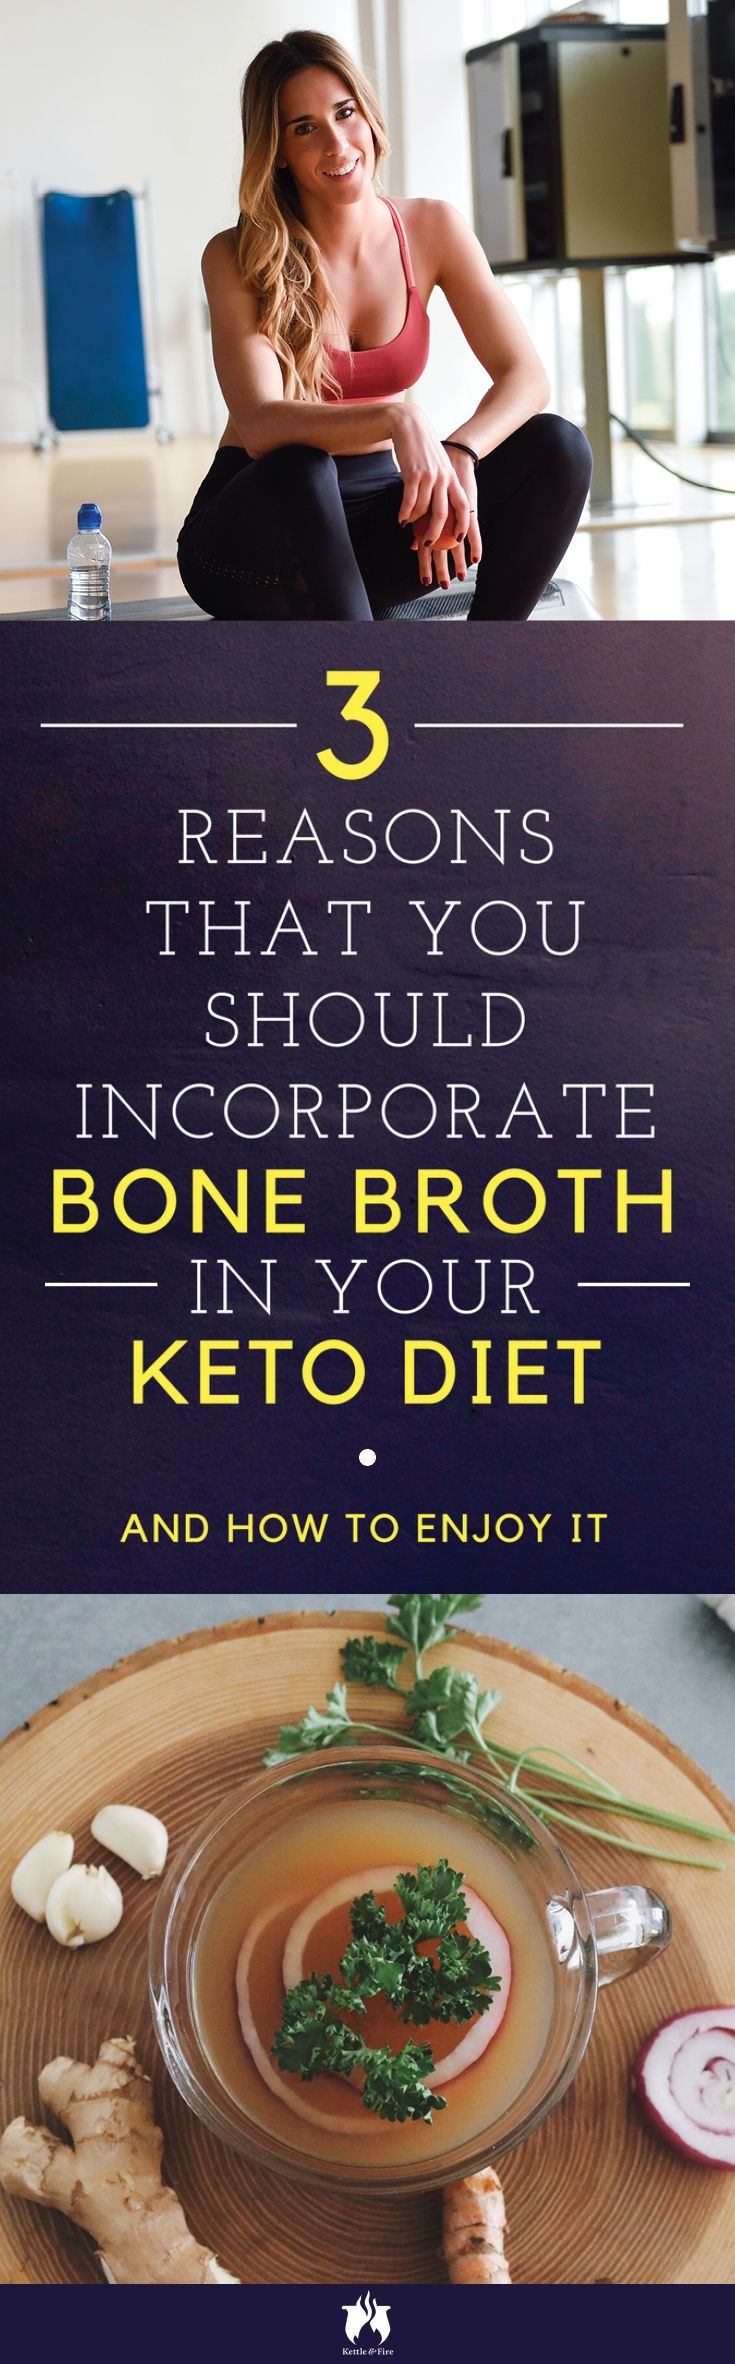 Bone broth is an established superfood embraced for its healing properties. So how does bone broth fit into a Ketogenic diet? Let's dive in.